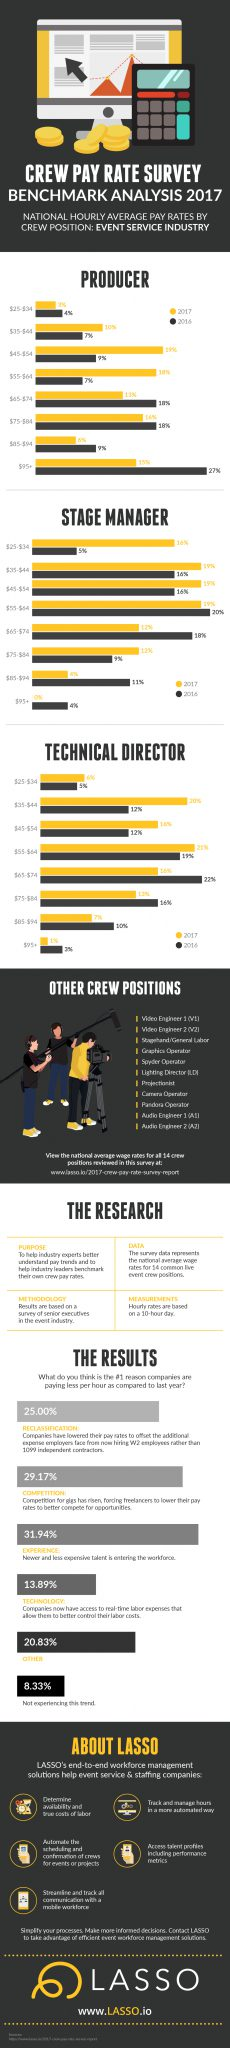 Infographic Crew Pay Rate